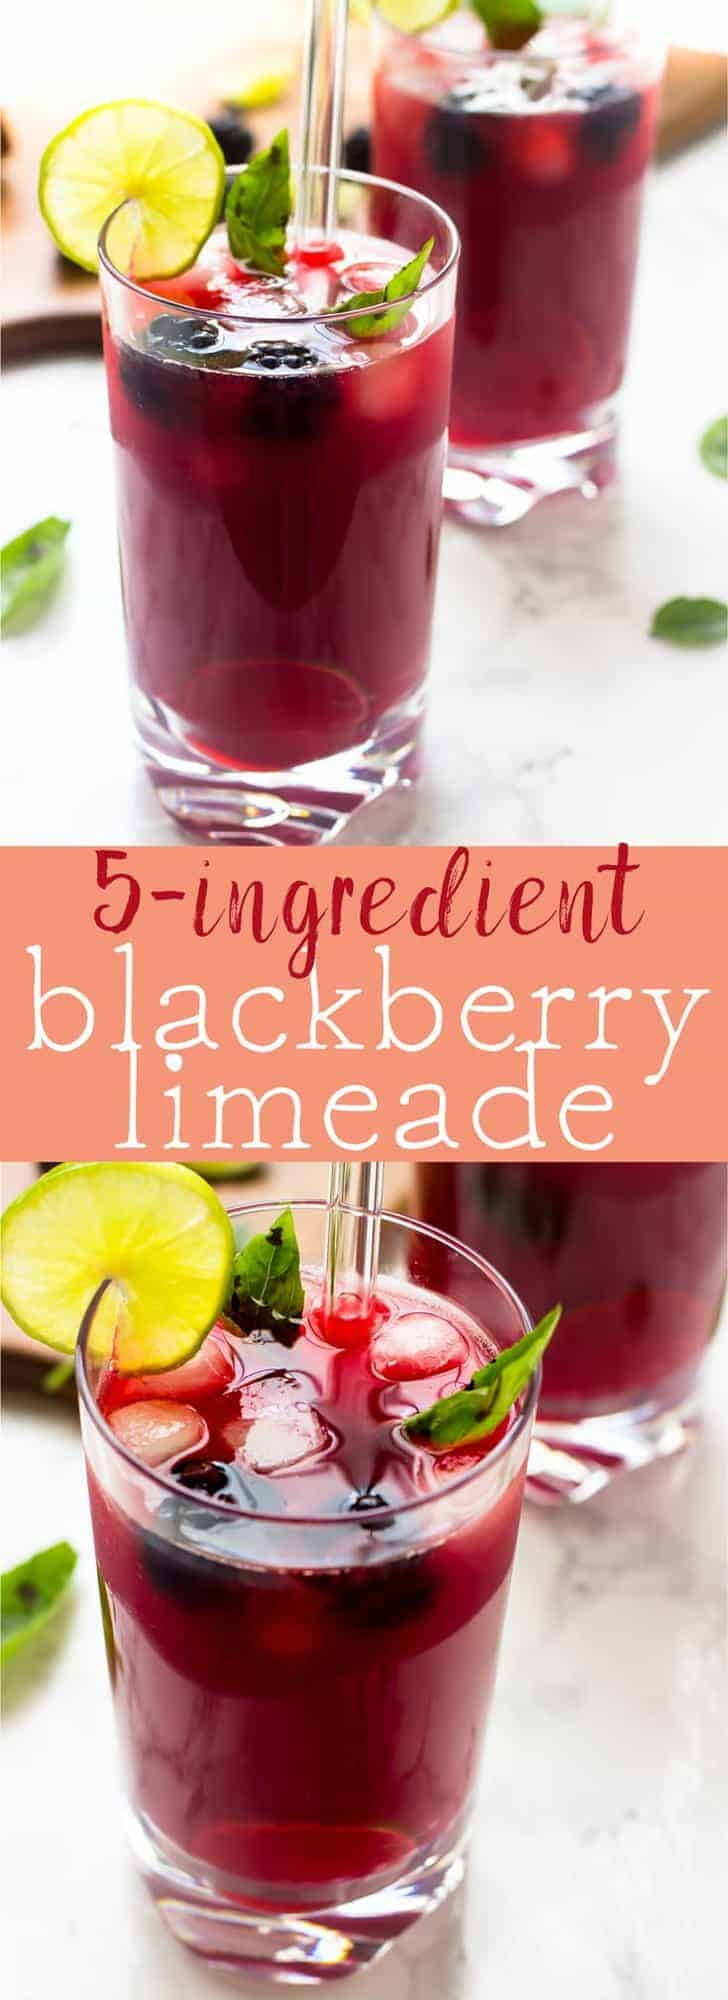 Pour a glass of this cool and refreshing Blackberry Limeade made with just 5 ingredients in just 20 minutes for a great summer drink! via https://jessicainthekitchen.com